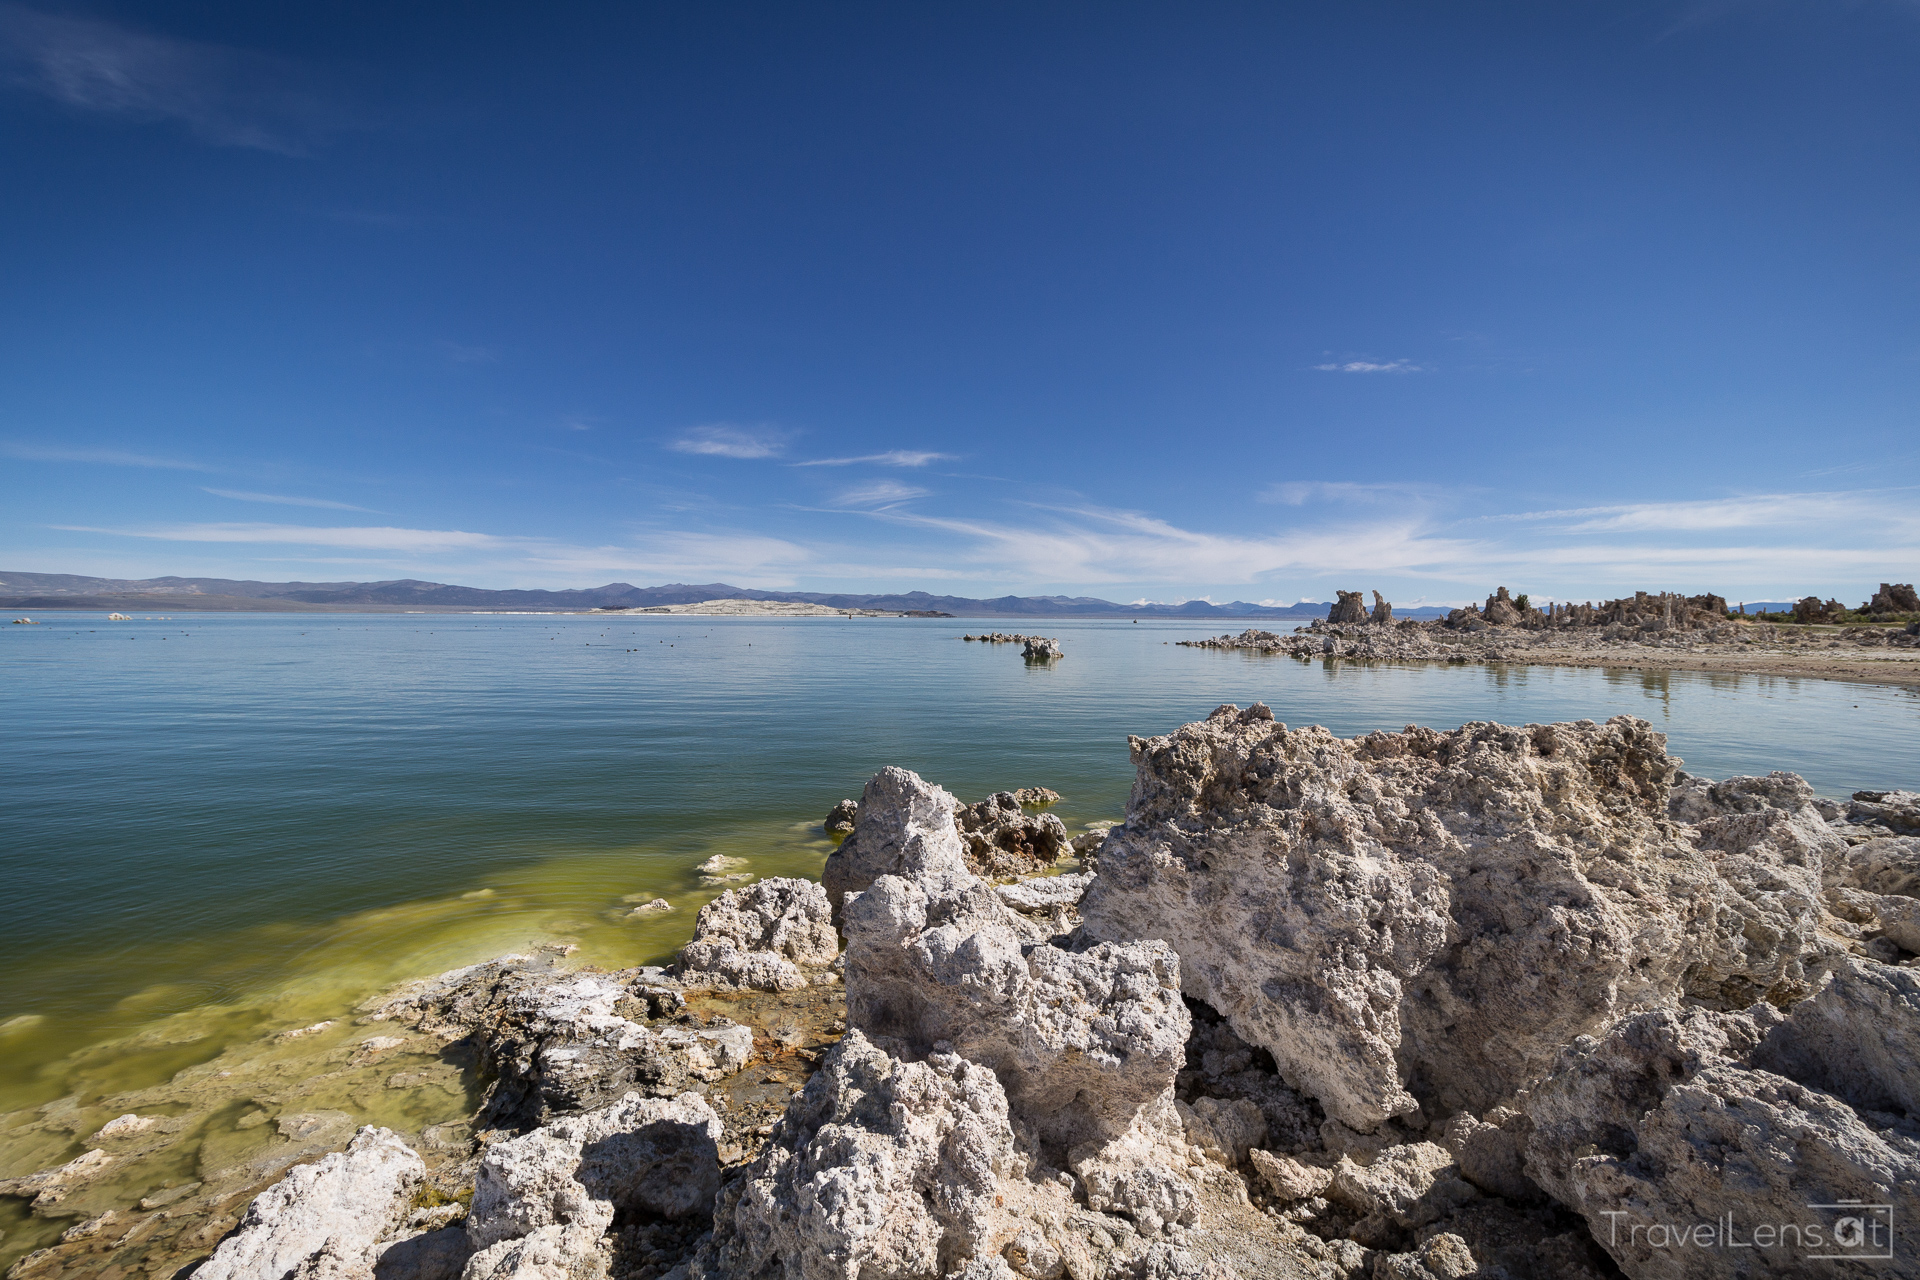 Tag 12 (15.05.2016) – June Lake – Mono Lake – Yosemite NP